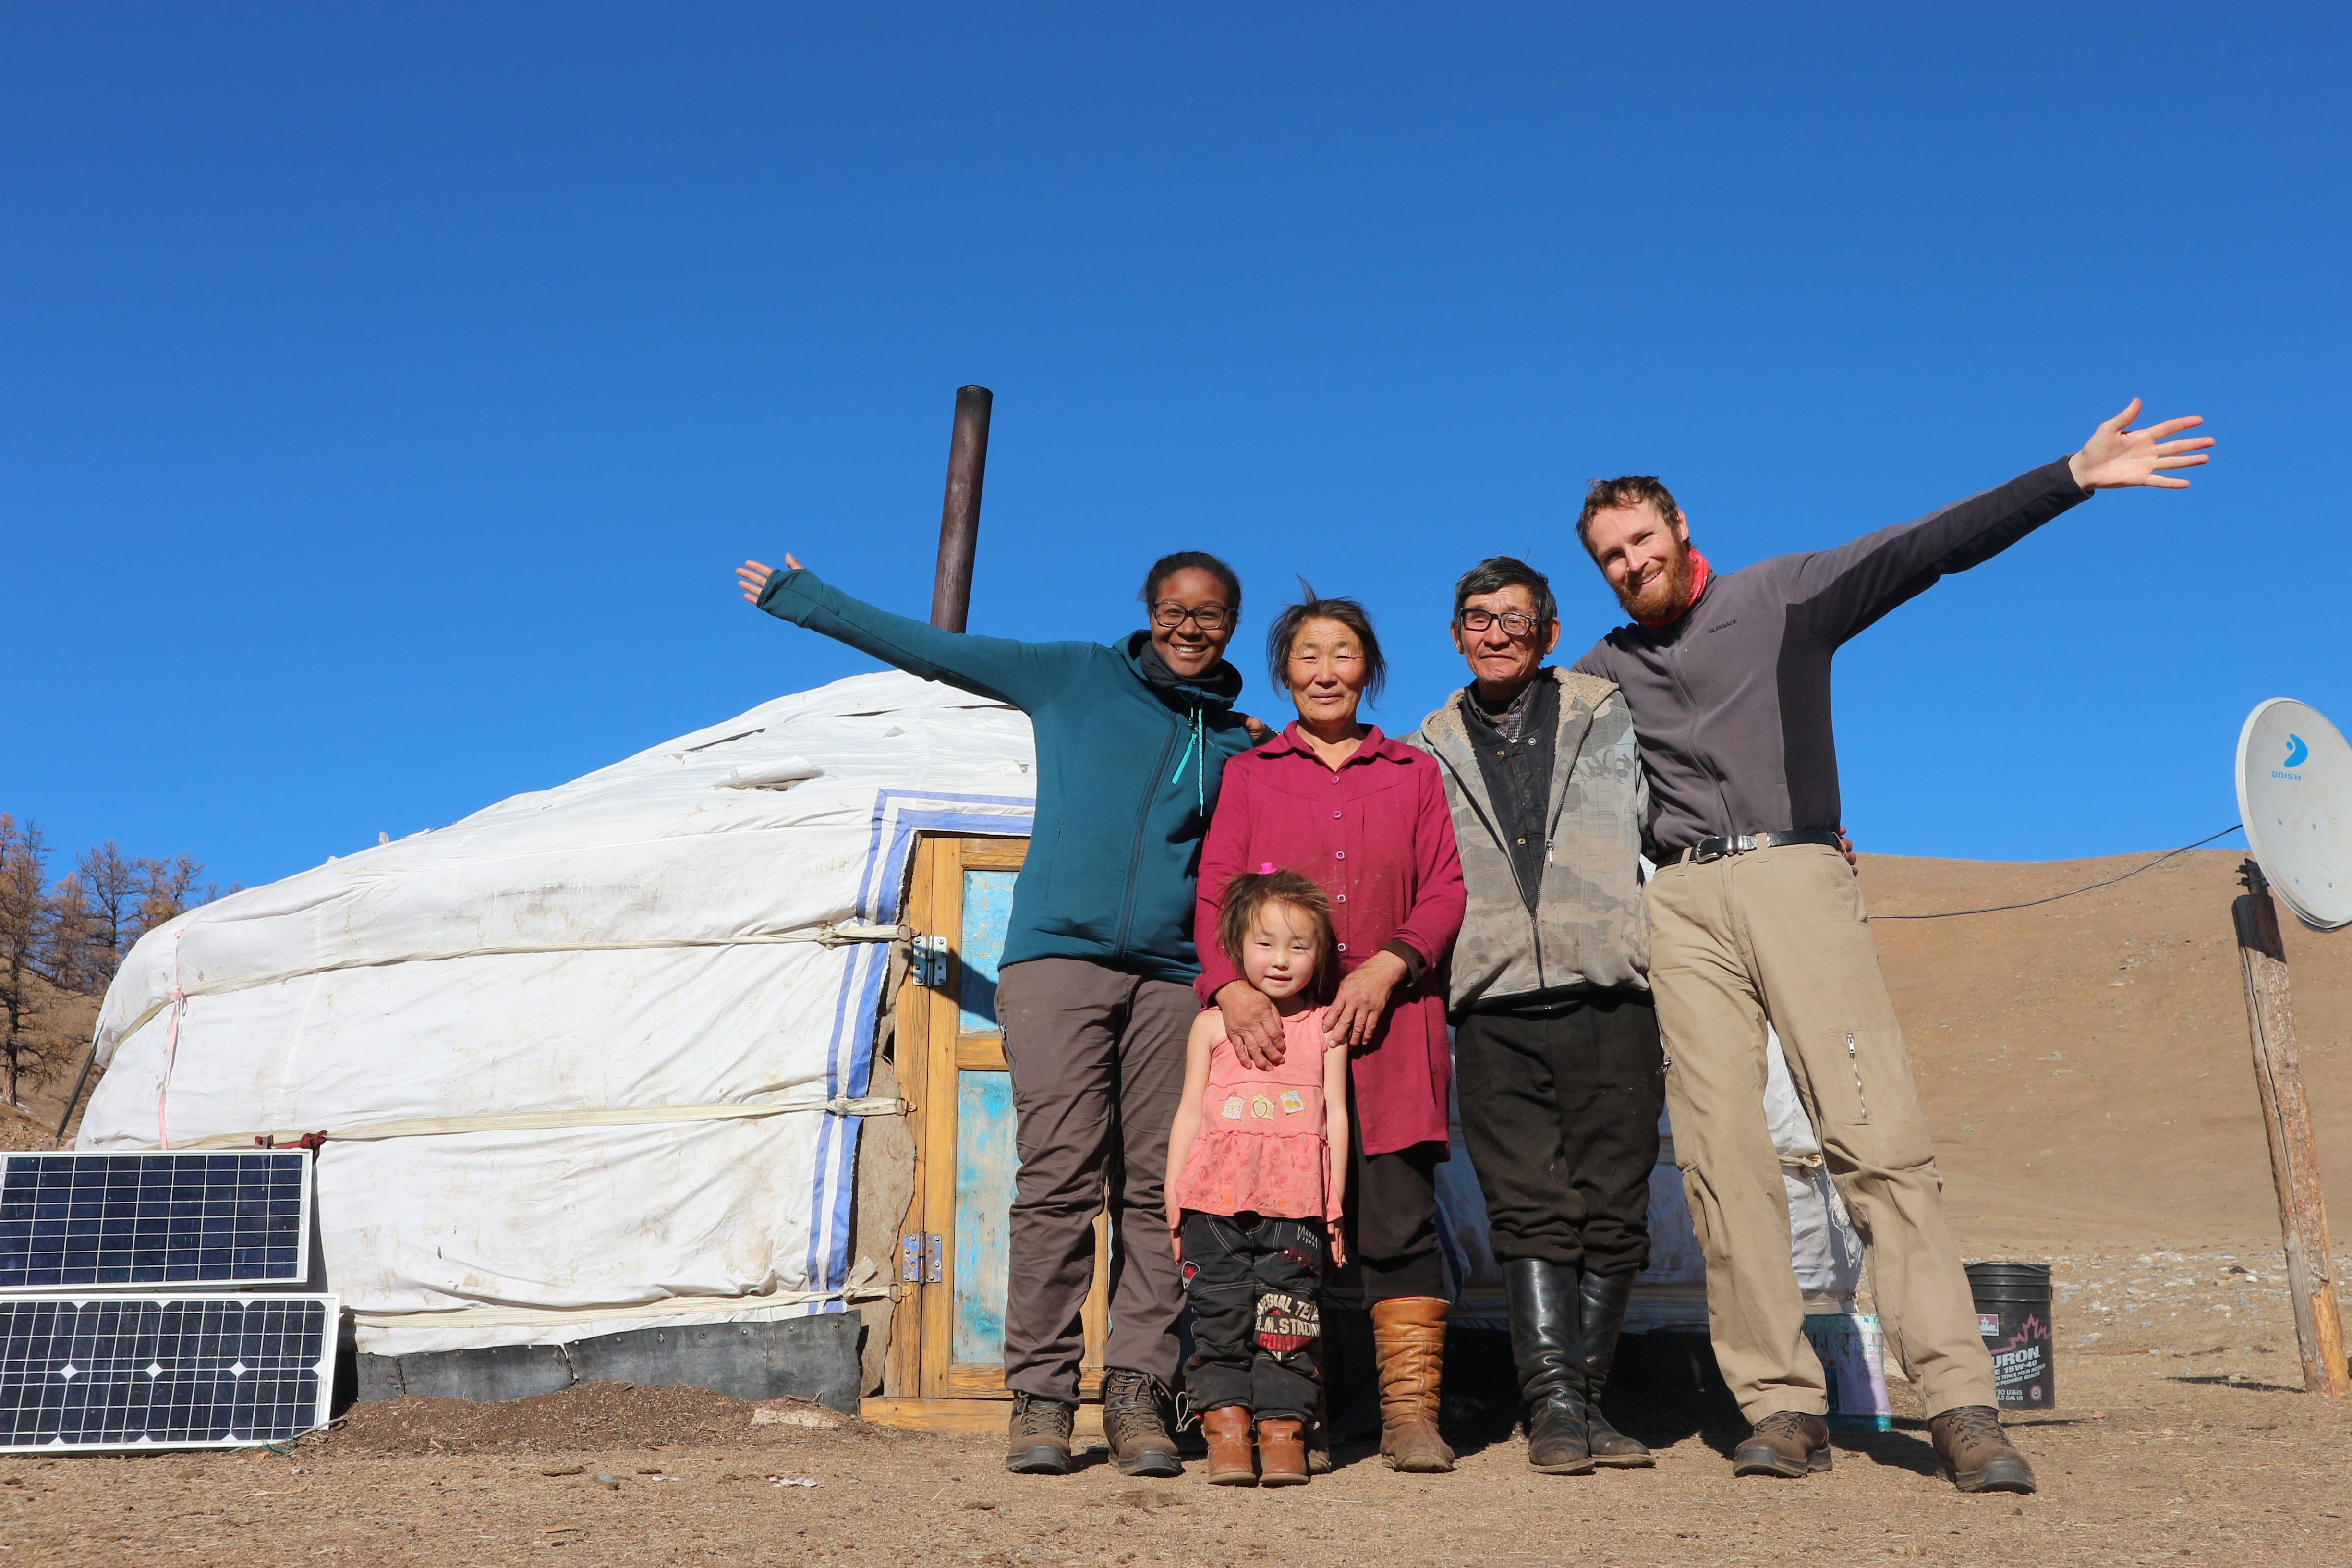 In front of the yurt